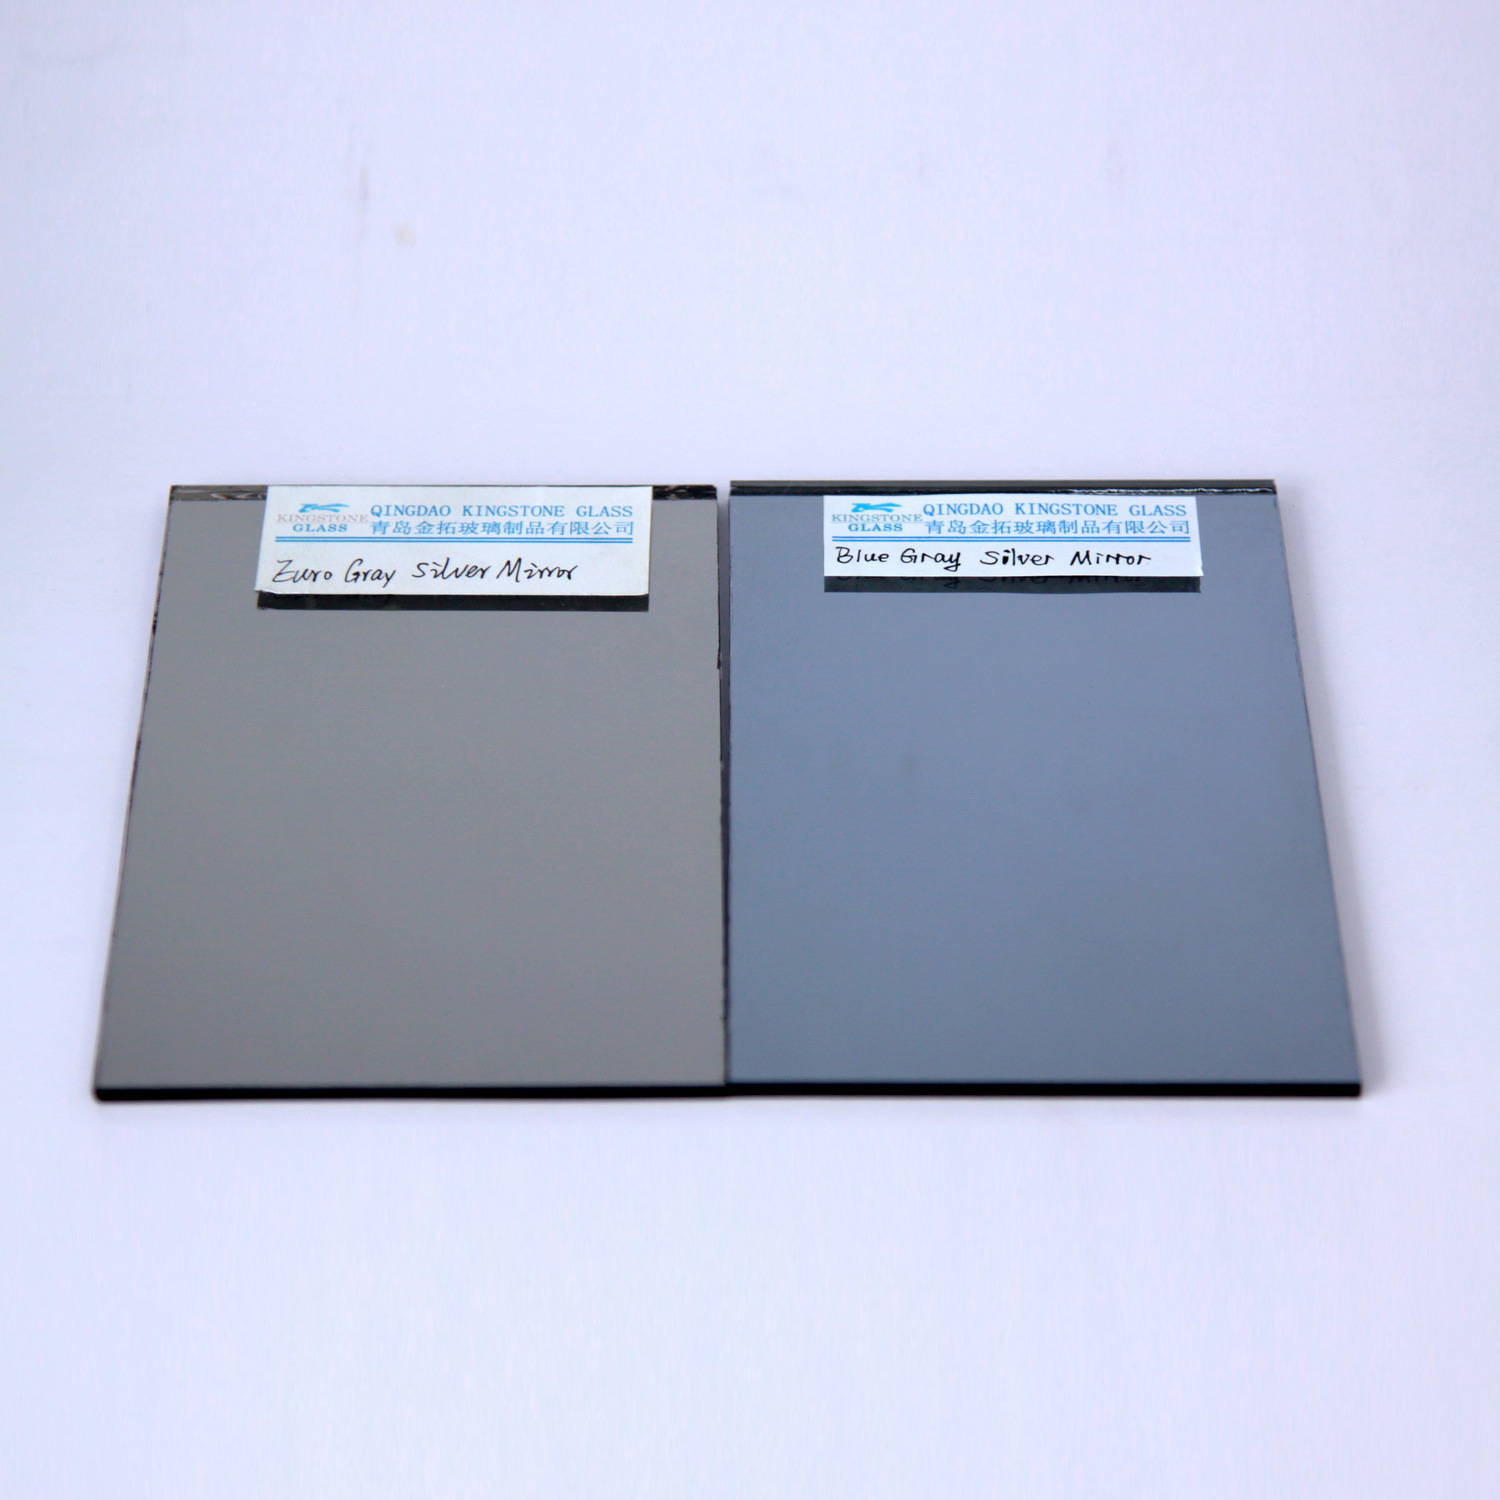 Euro Gray and Blue Gray Silver Mirror at 3mm-6mm